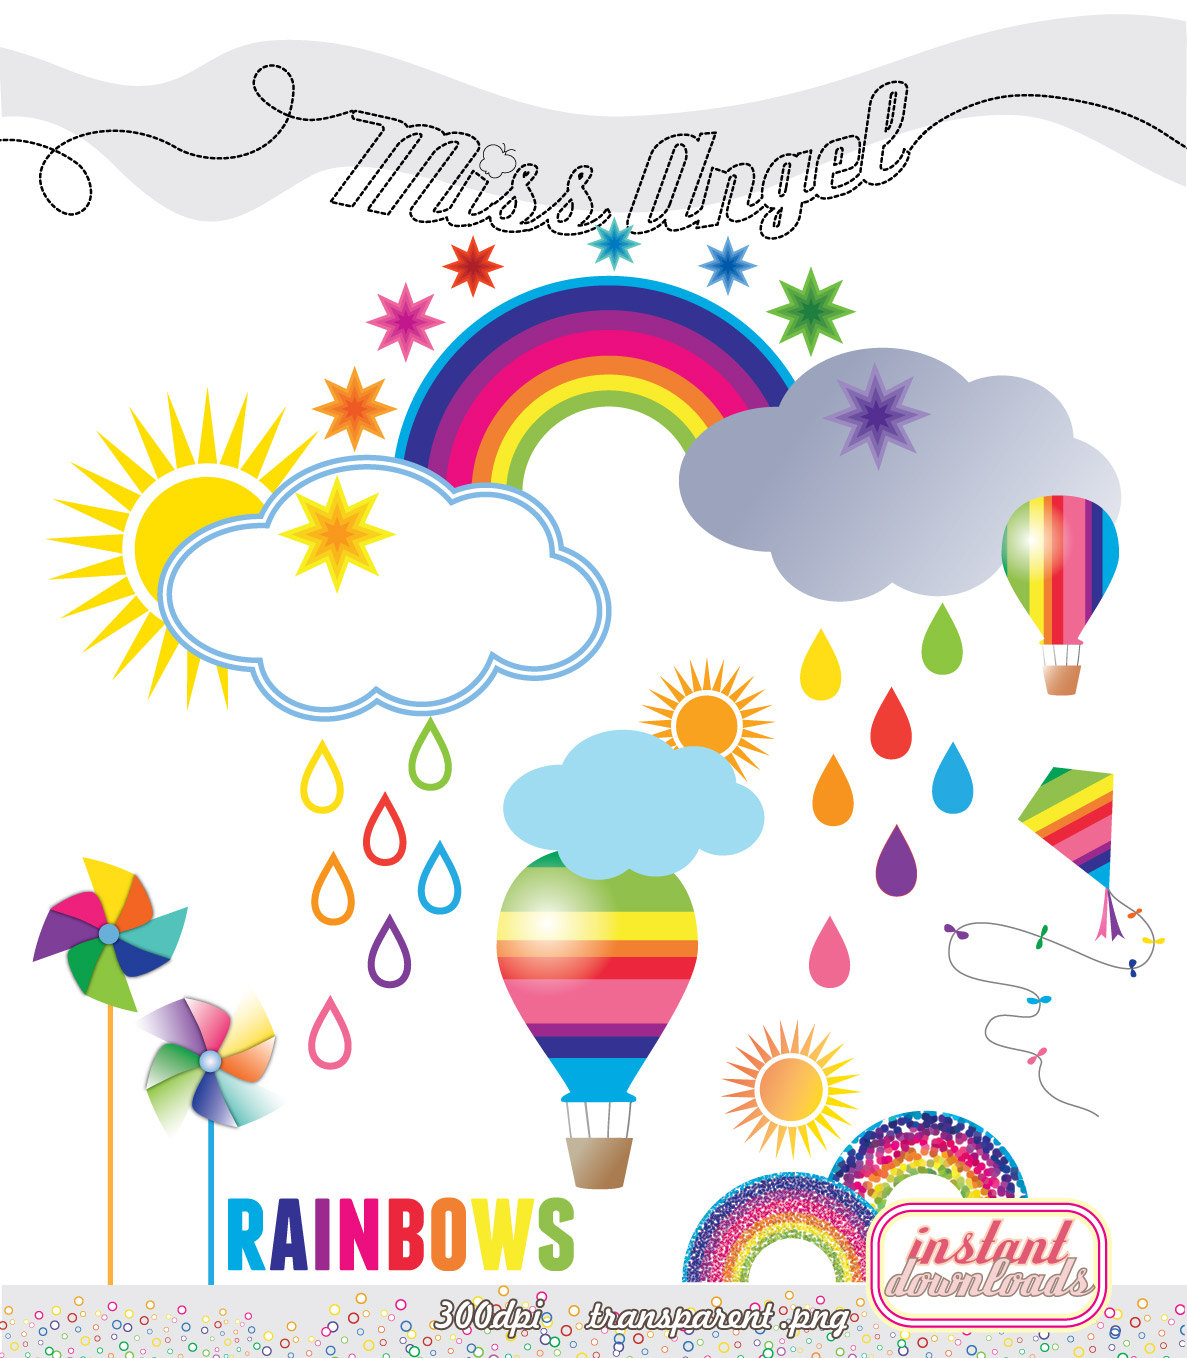 Rainbows CLIPART 23 files. Weather 6